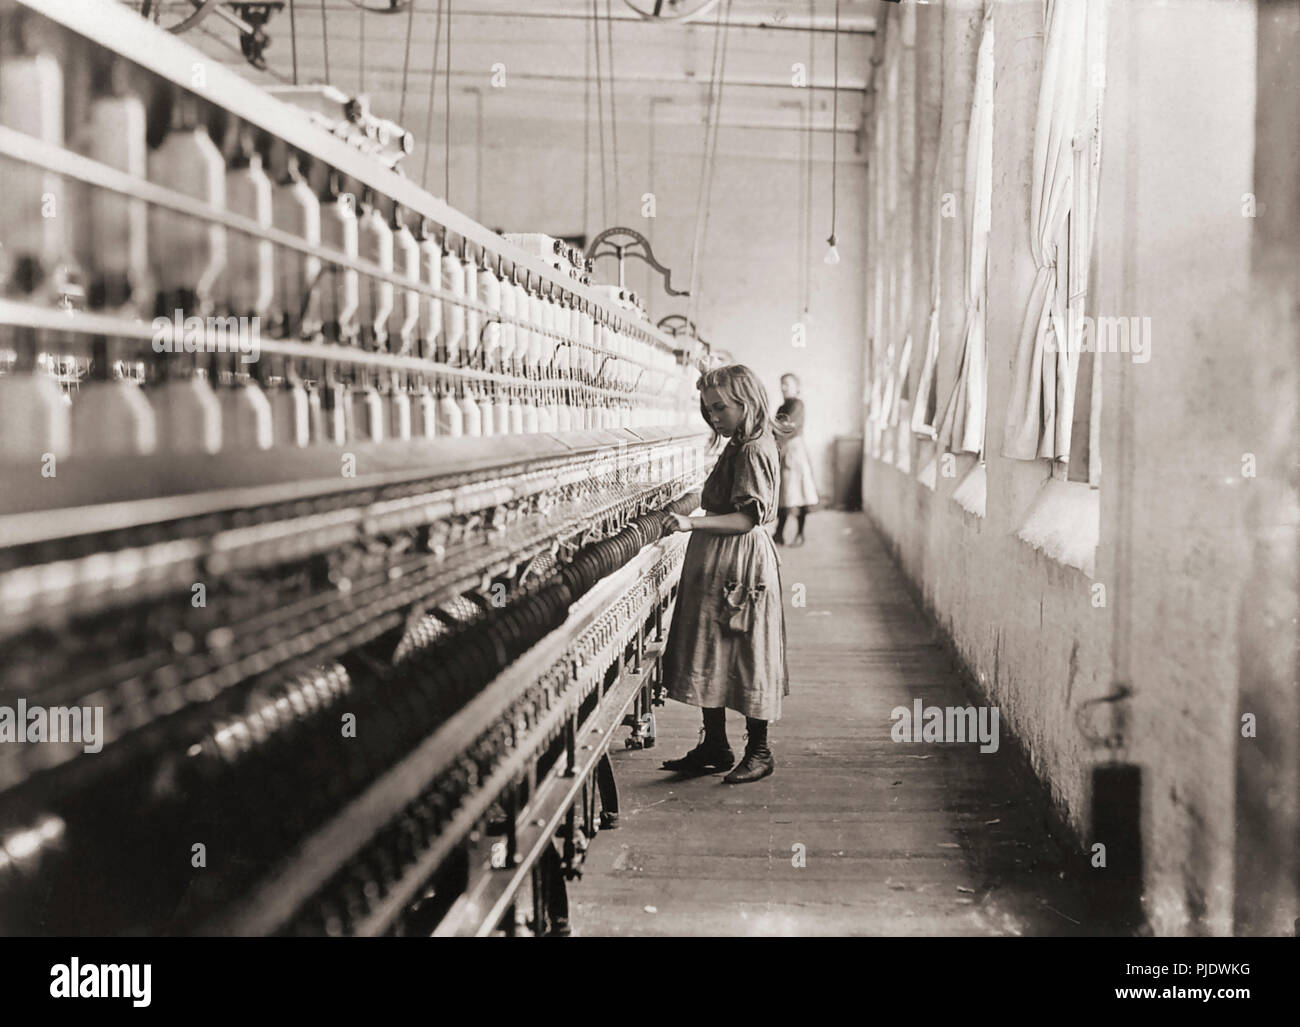 Sadie Pfeiffer, Spinner in a Cotton Mill.  Taken in Lancaster, North Carolina in 1908. After a photograph by Lewis Hine, 1874-1940.  Hine was a sociology teacher who used photography to record social problems and spur reform. - Stock Image